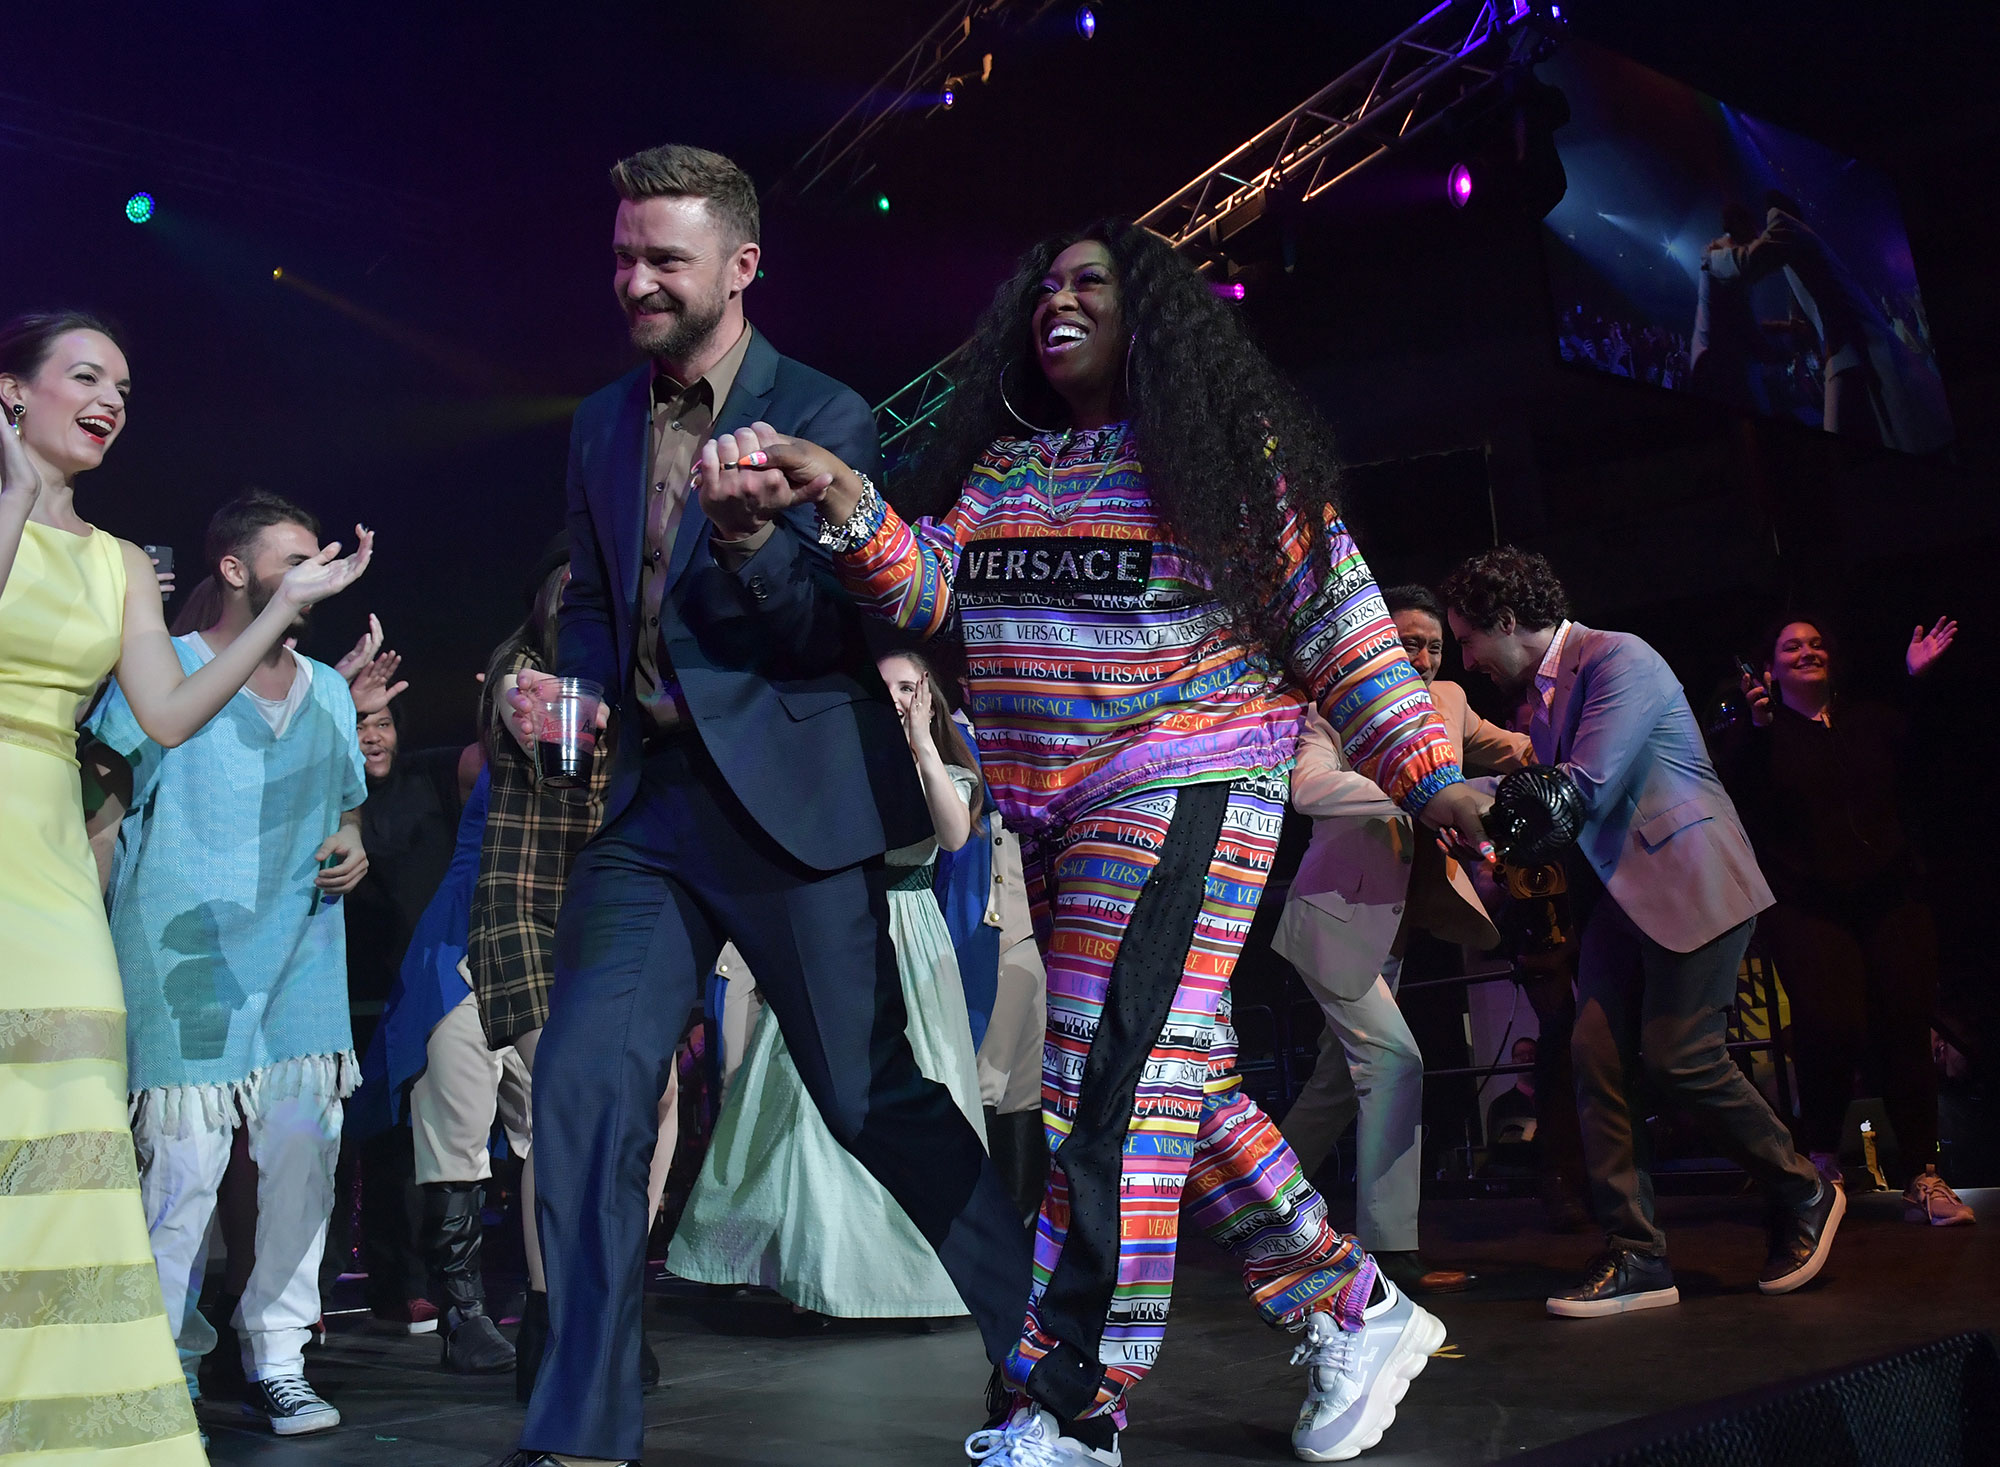 BOSTON, MA - MAY 10: Justin Timberlake, Missy Elliott and Alex Lacamoire onstage at the annual Berklee College of Music Commencement concert at Agganis Arena at Boston University on May 10, 2019 in Boston, Massachusetts. Missy Elliott, Alex Lacamoire, and Justin Timberlake will receive honorary doctorates at the Berklee commencement. (Photo by Paul Marotta/Getty Images for Berklee)